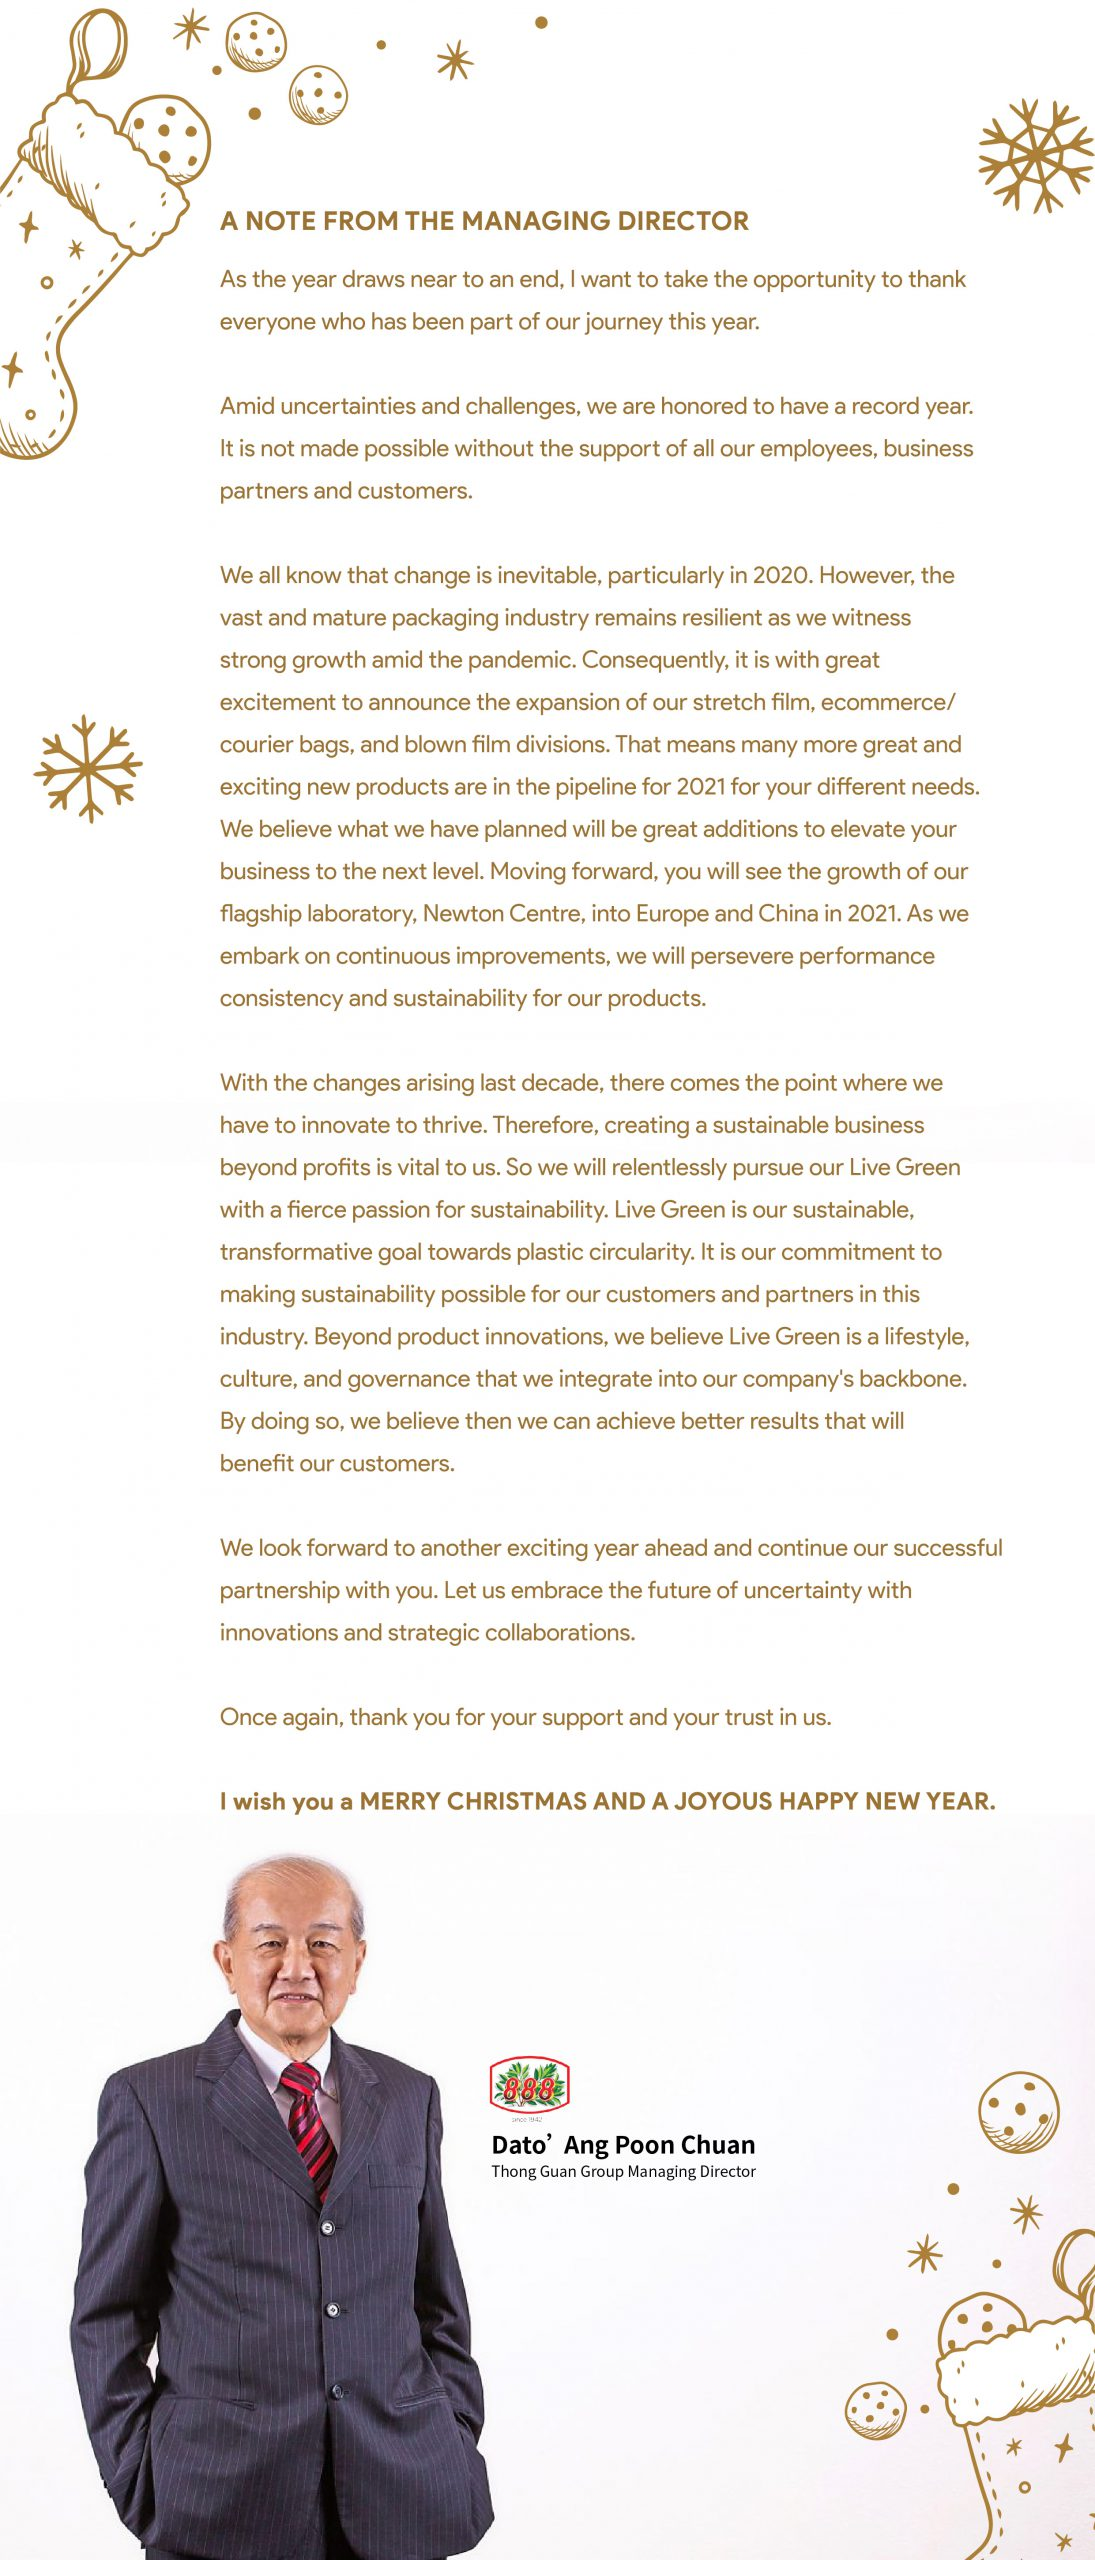 Christmas greeting from the managing director of Thong Guan